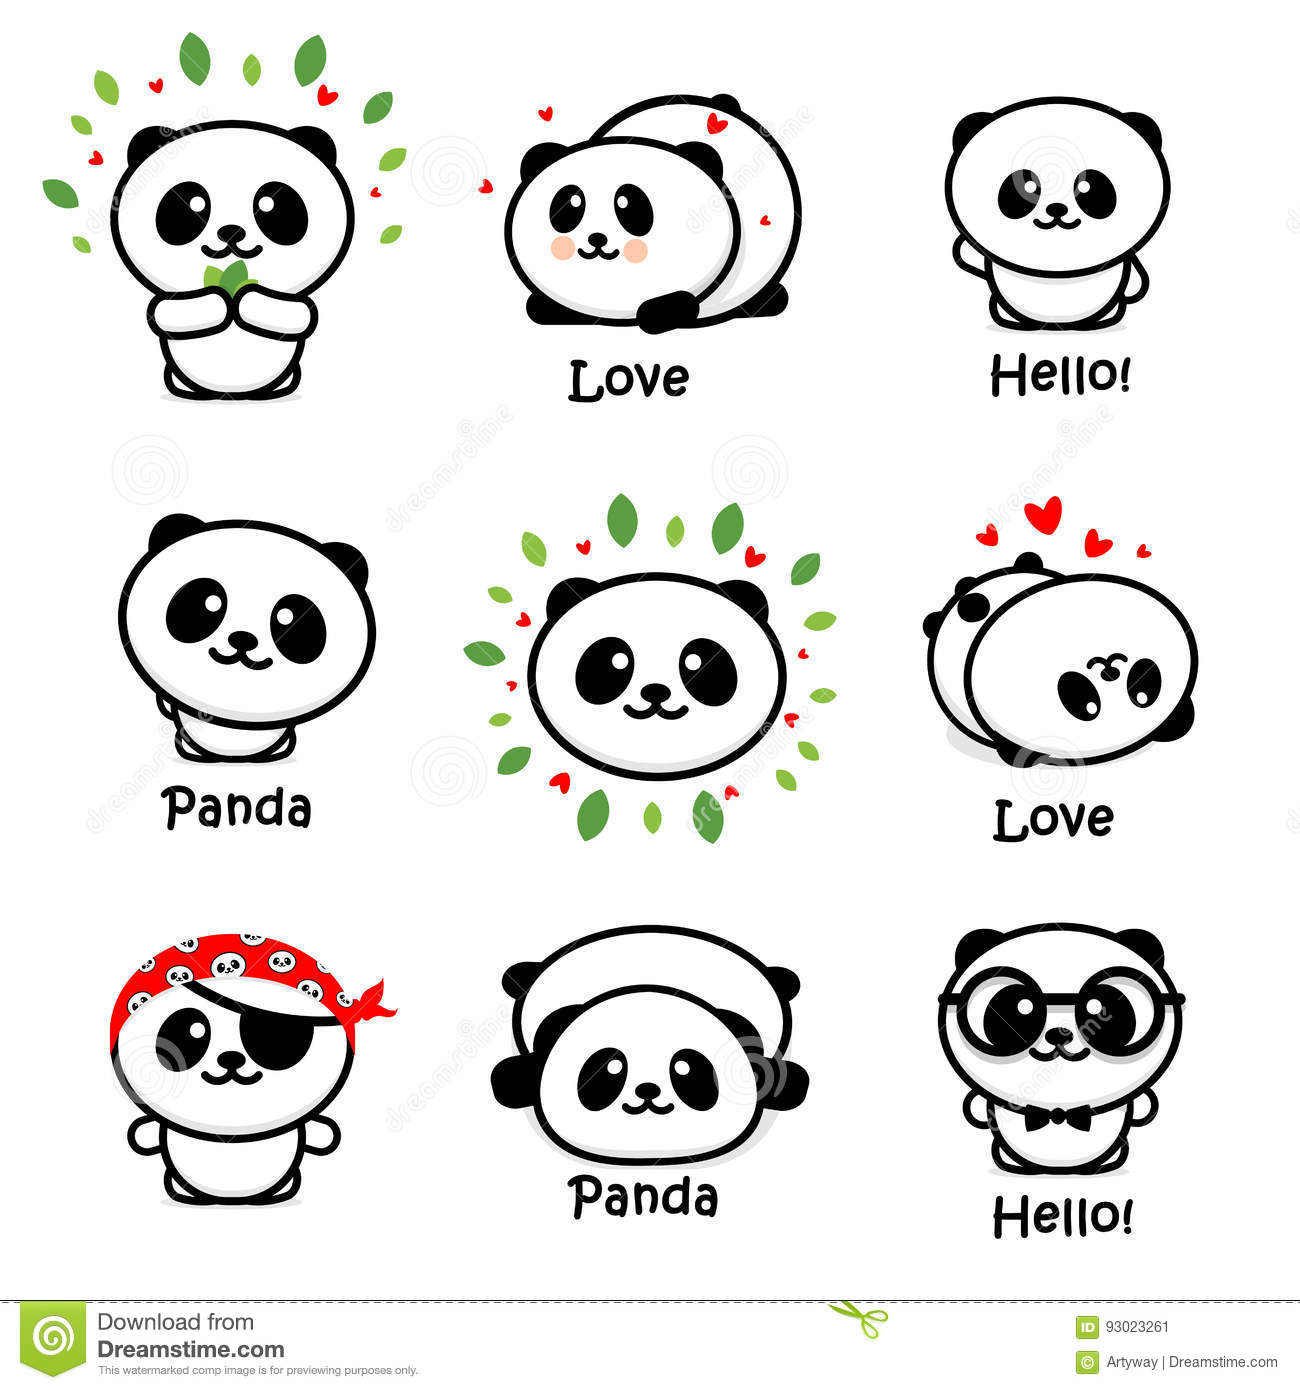 Panda Asian Bear Vector Illustrations mignon, collection d animaux chinois Logo Elements simple, icônes noires et blanches